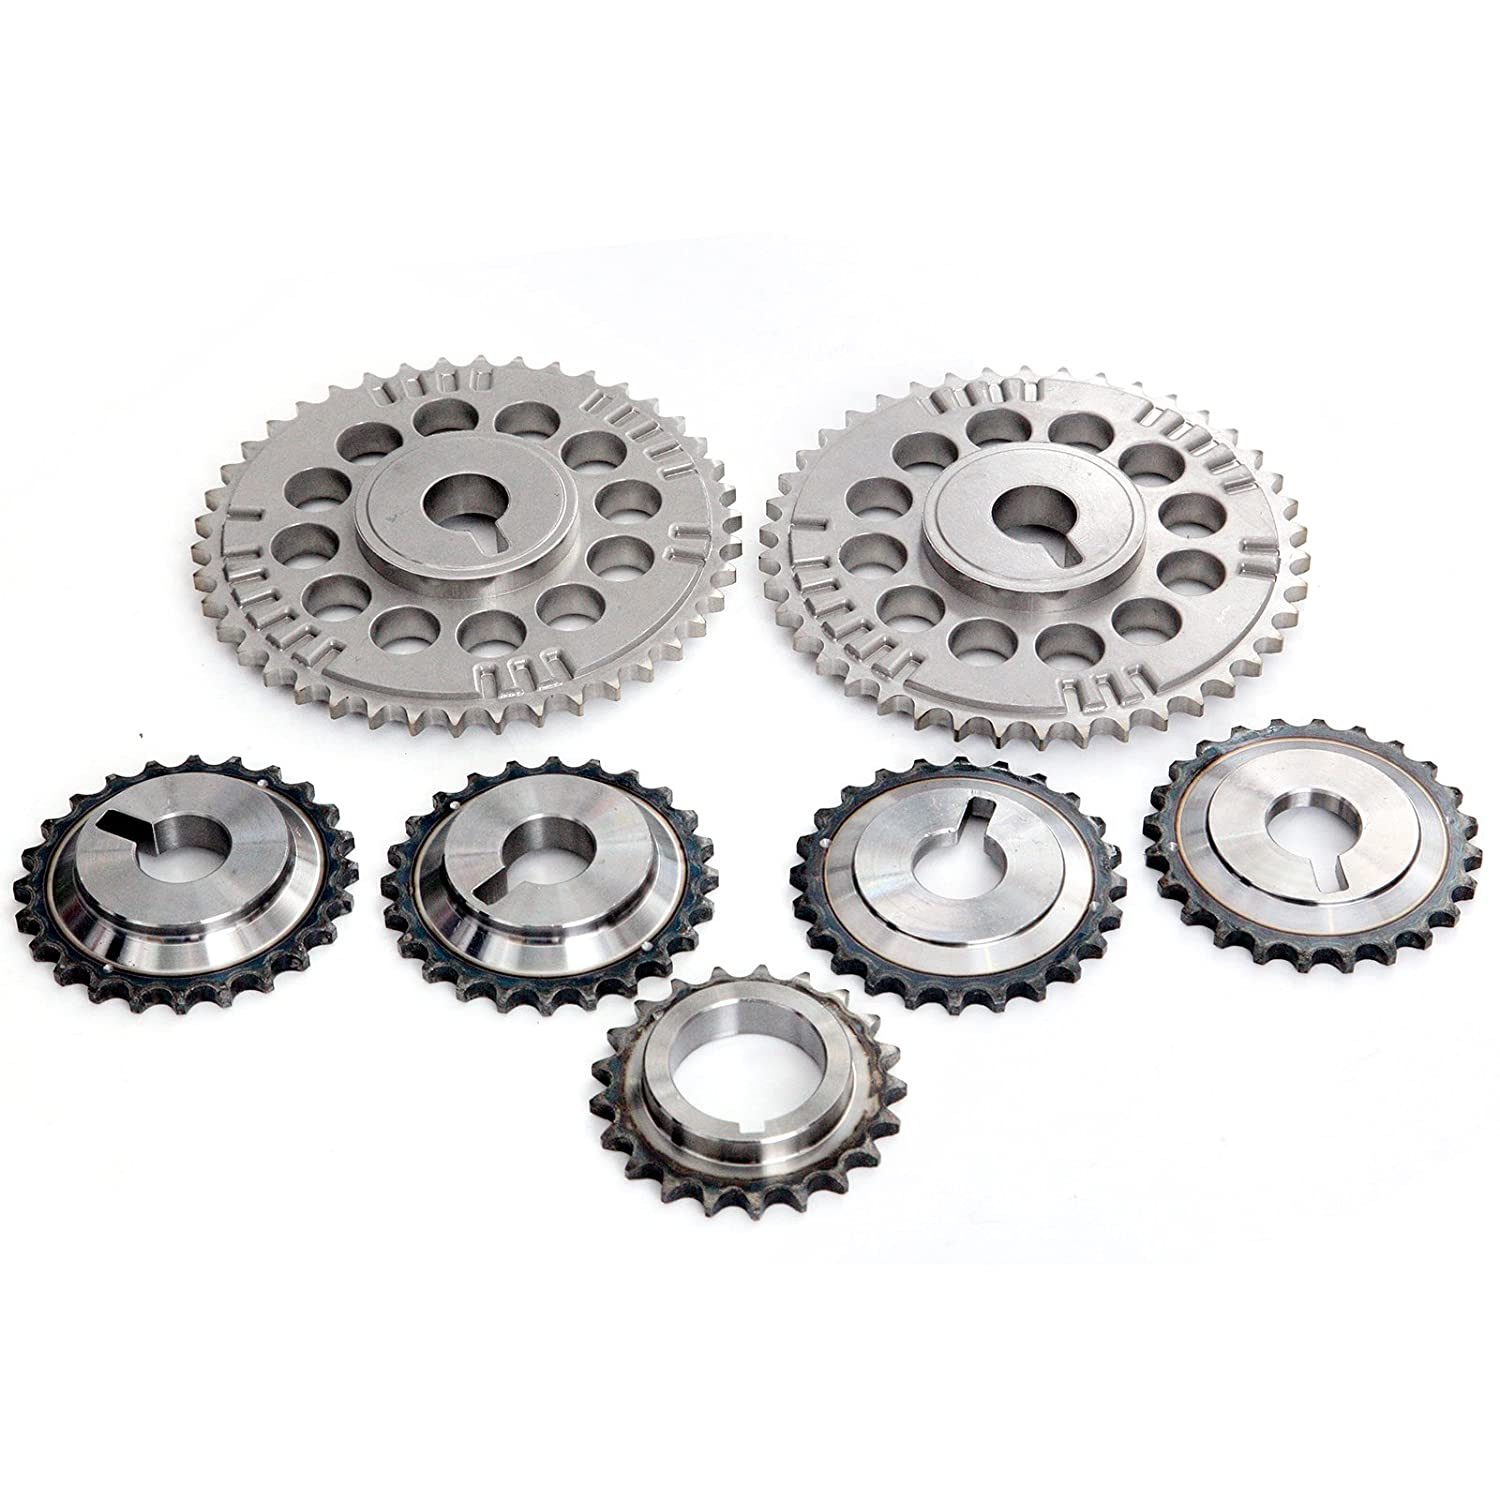 Amazon.com: SCITOO TKNI033 Timing Chain Kit Tensioner Guide Rail Crank Sprocket Cam Sprockets Compatible 01-04 Nissan Pathfinder Infiniti QX4 3.5L DOHC: ...